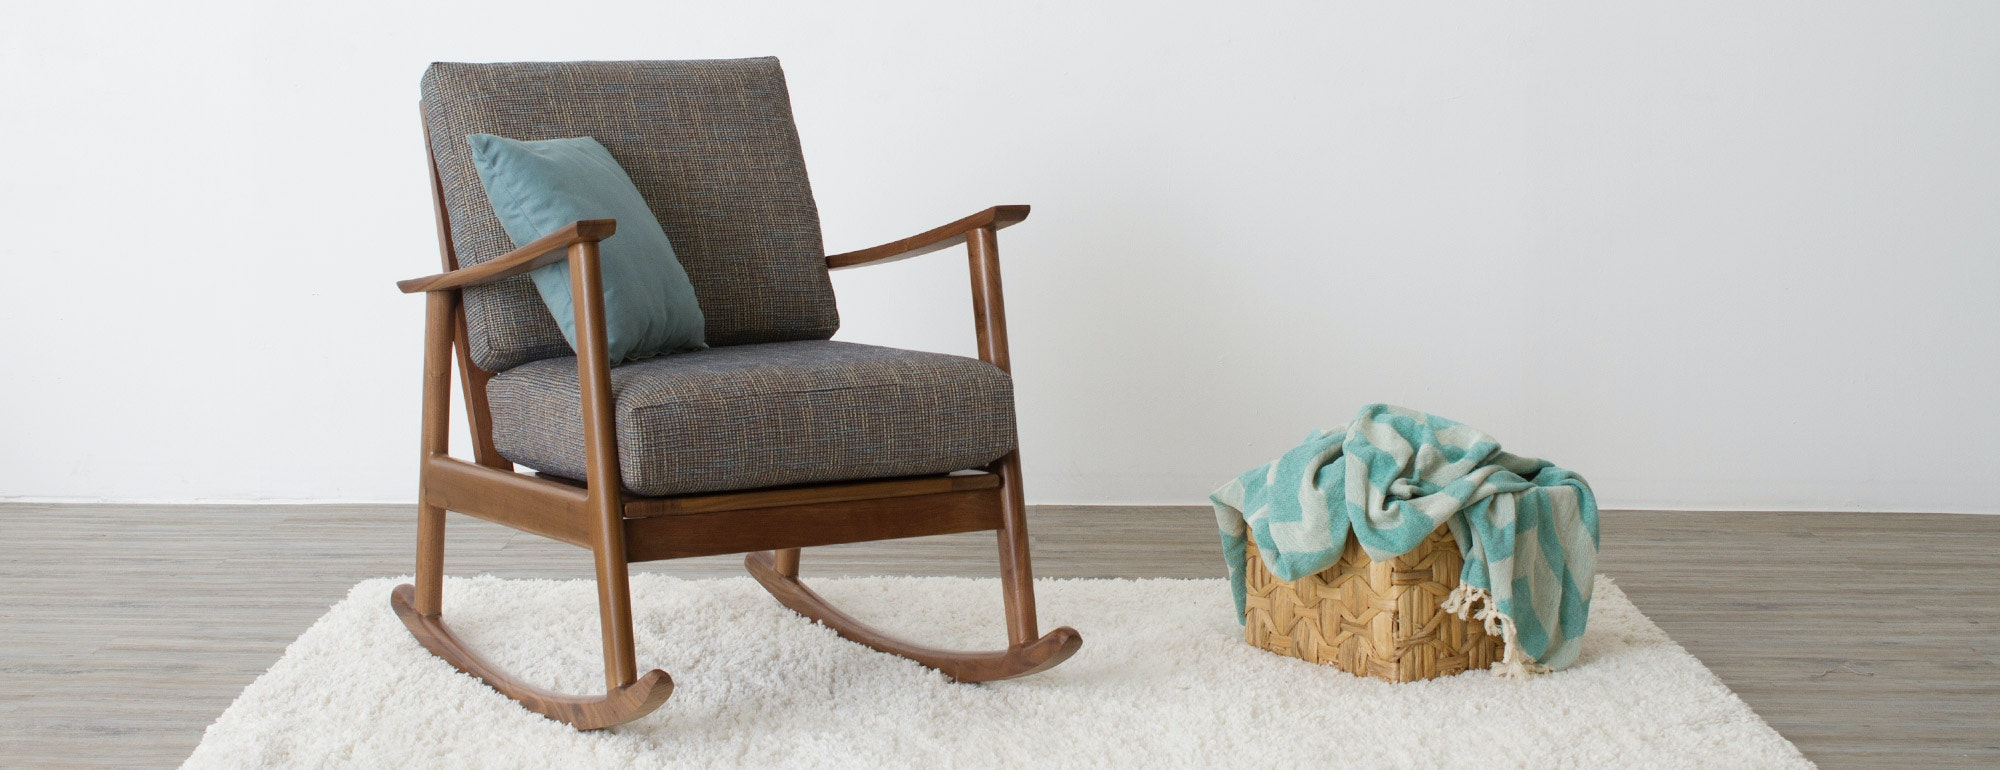 Teal Rocking Chair Paley Rocking Chair Joybird